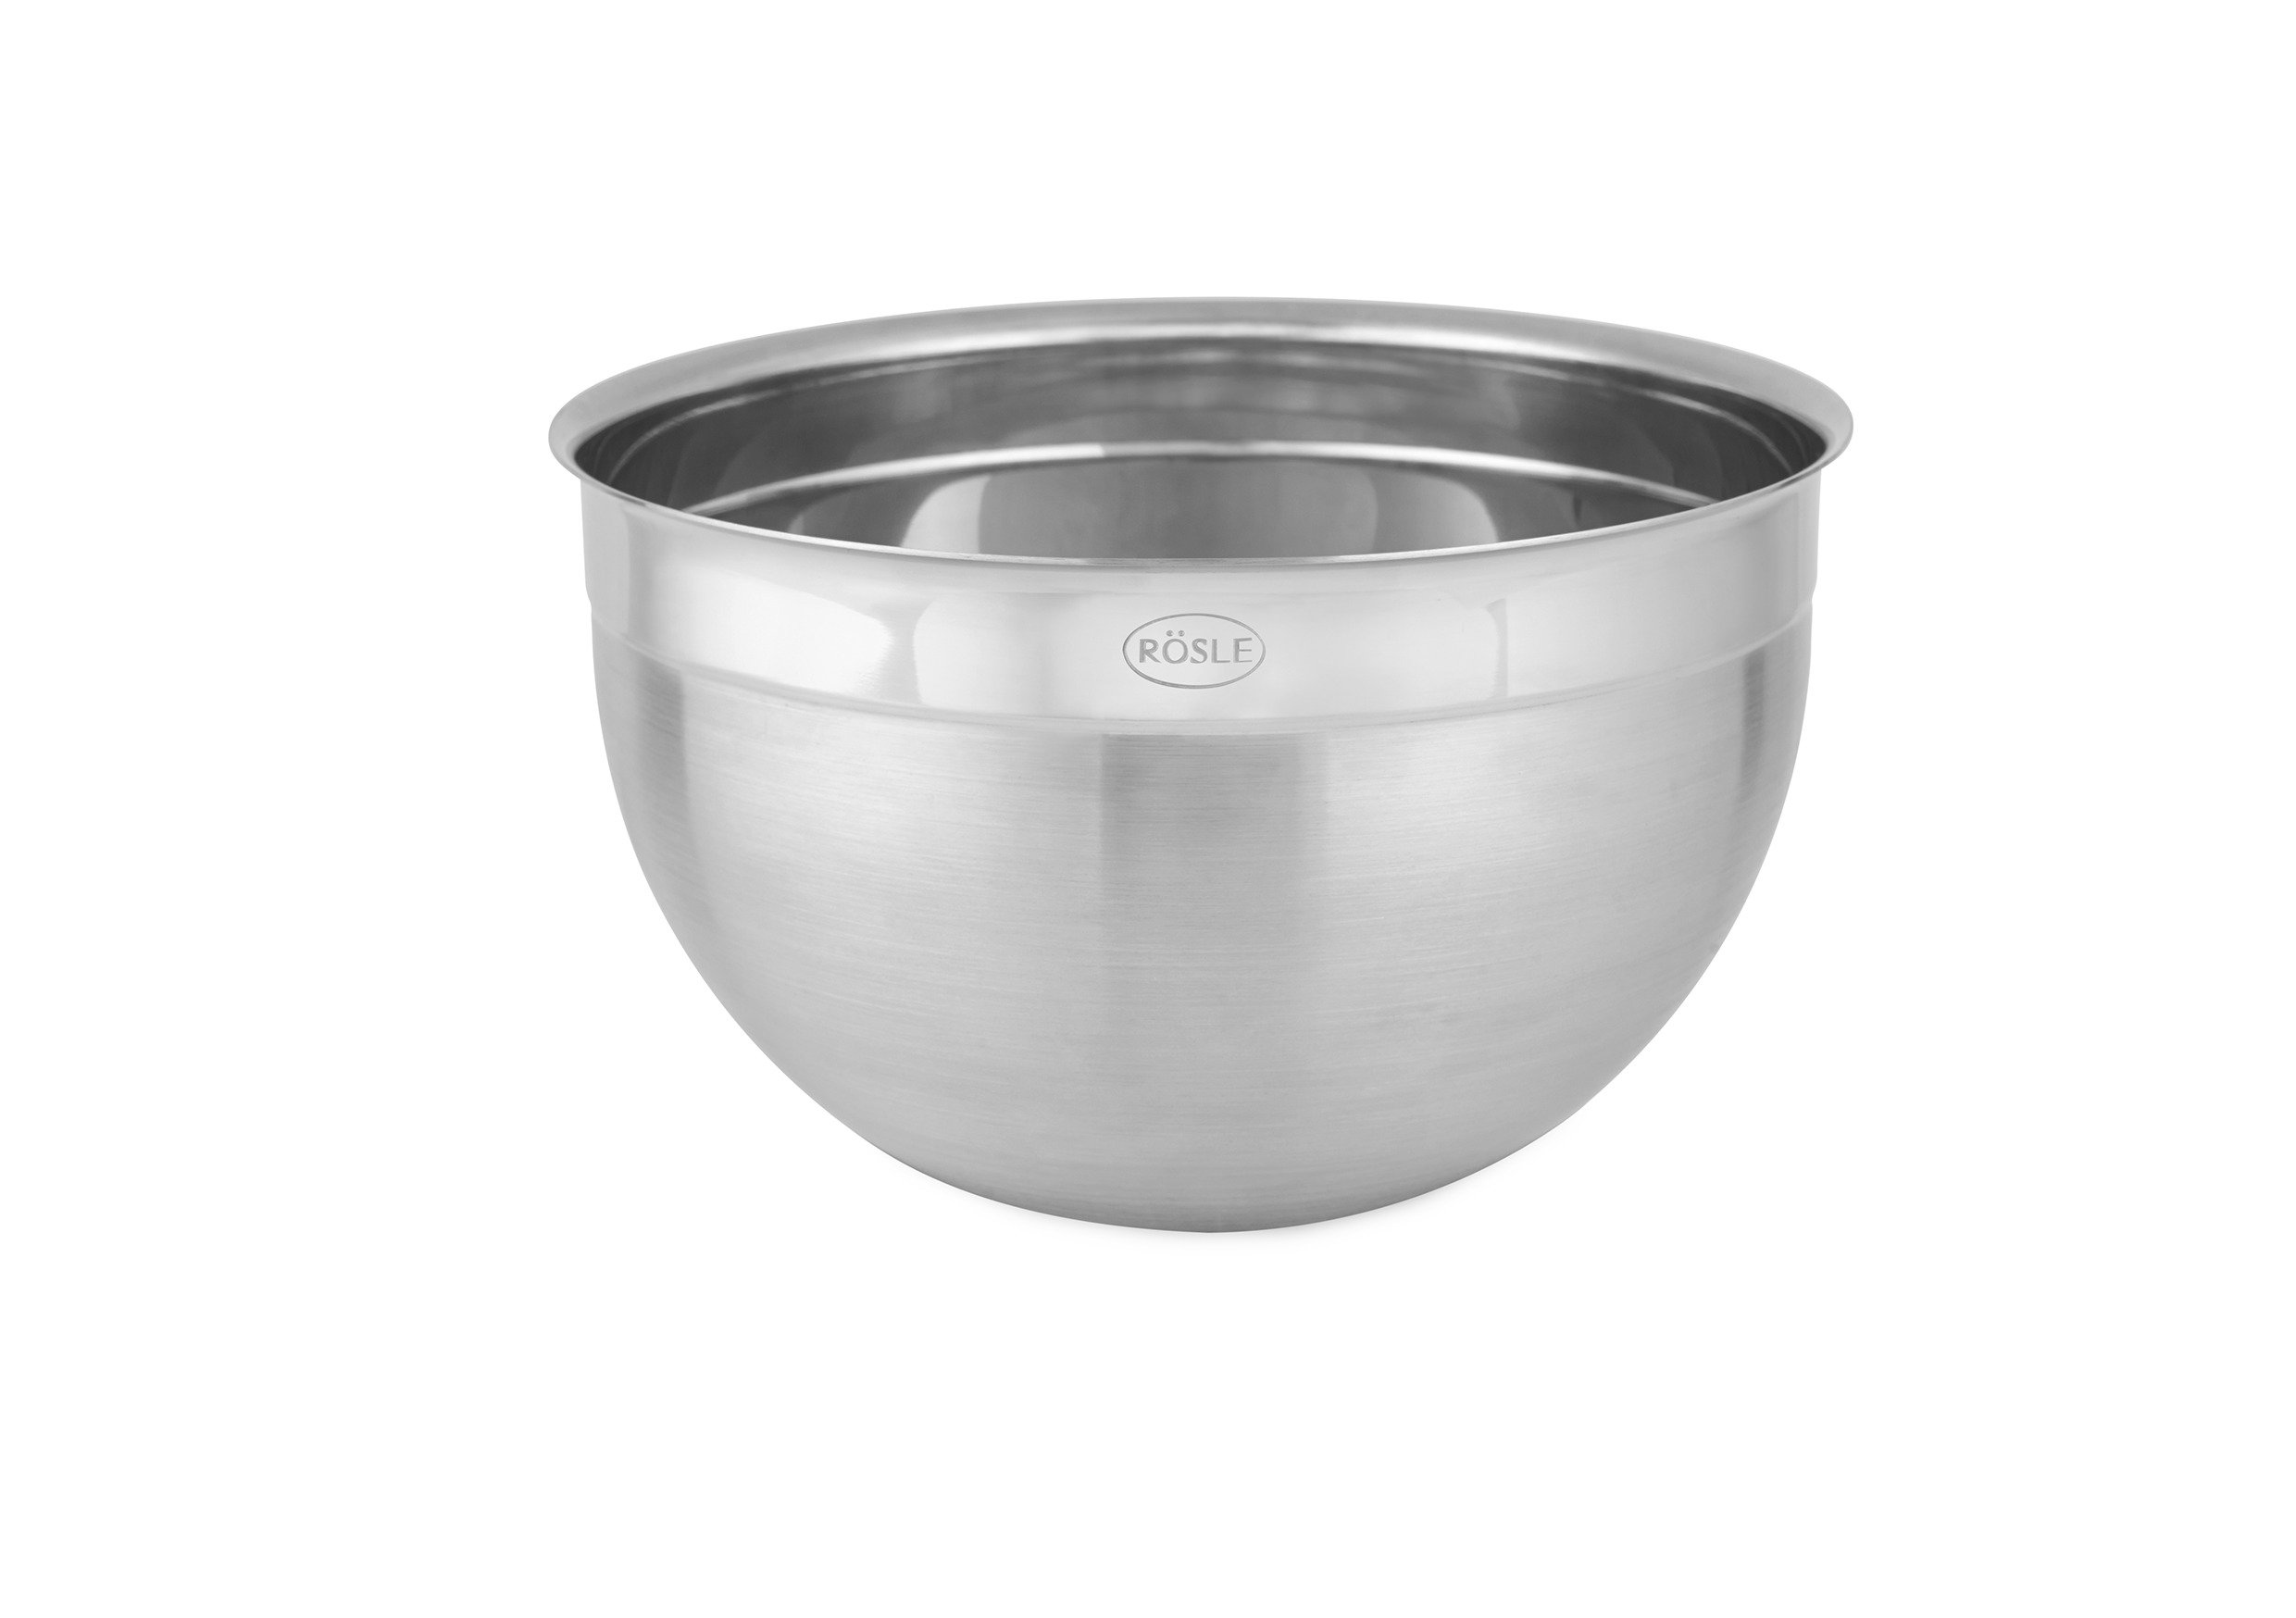 Rosle 15688 Rösle Stainless Steel 9-quart Bowl, 11'' Diameter by Rosle